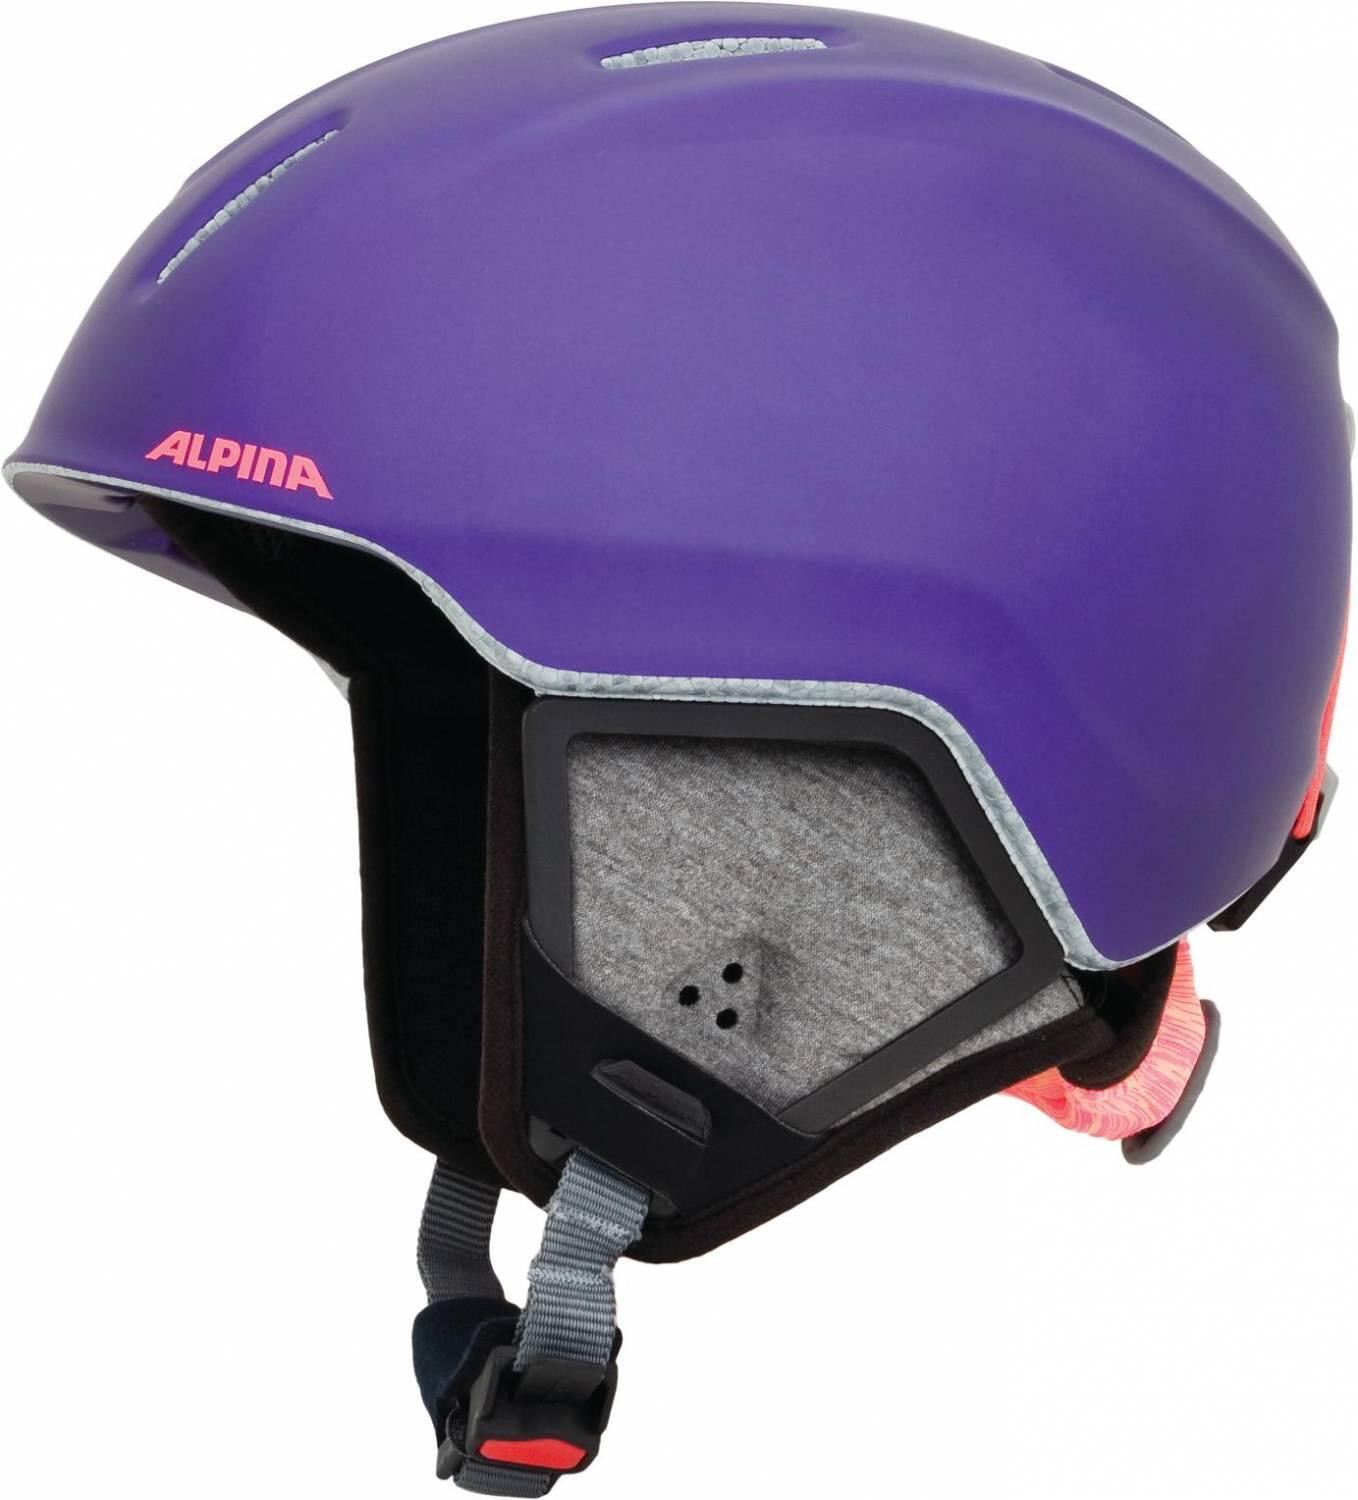 Fürski - Alpina Carat XT Kinderskihelm (Größe 51 55 cm, 54 royal purple matt) - Onlineshop